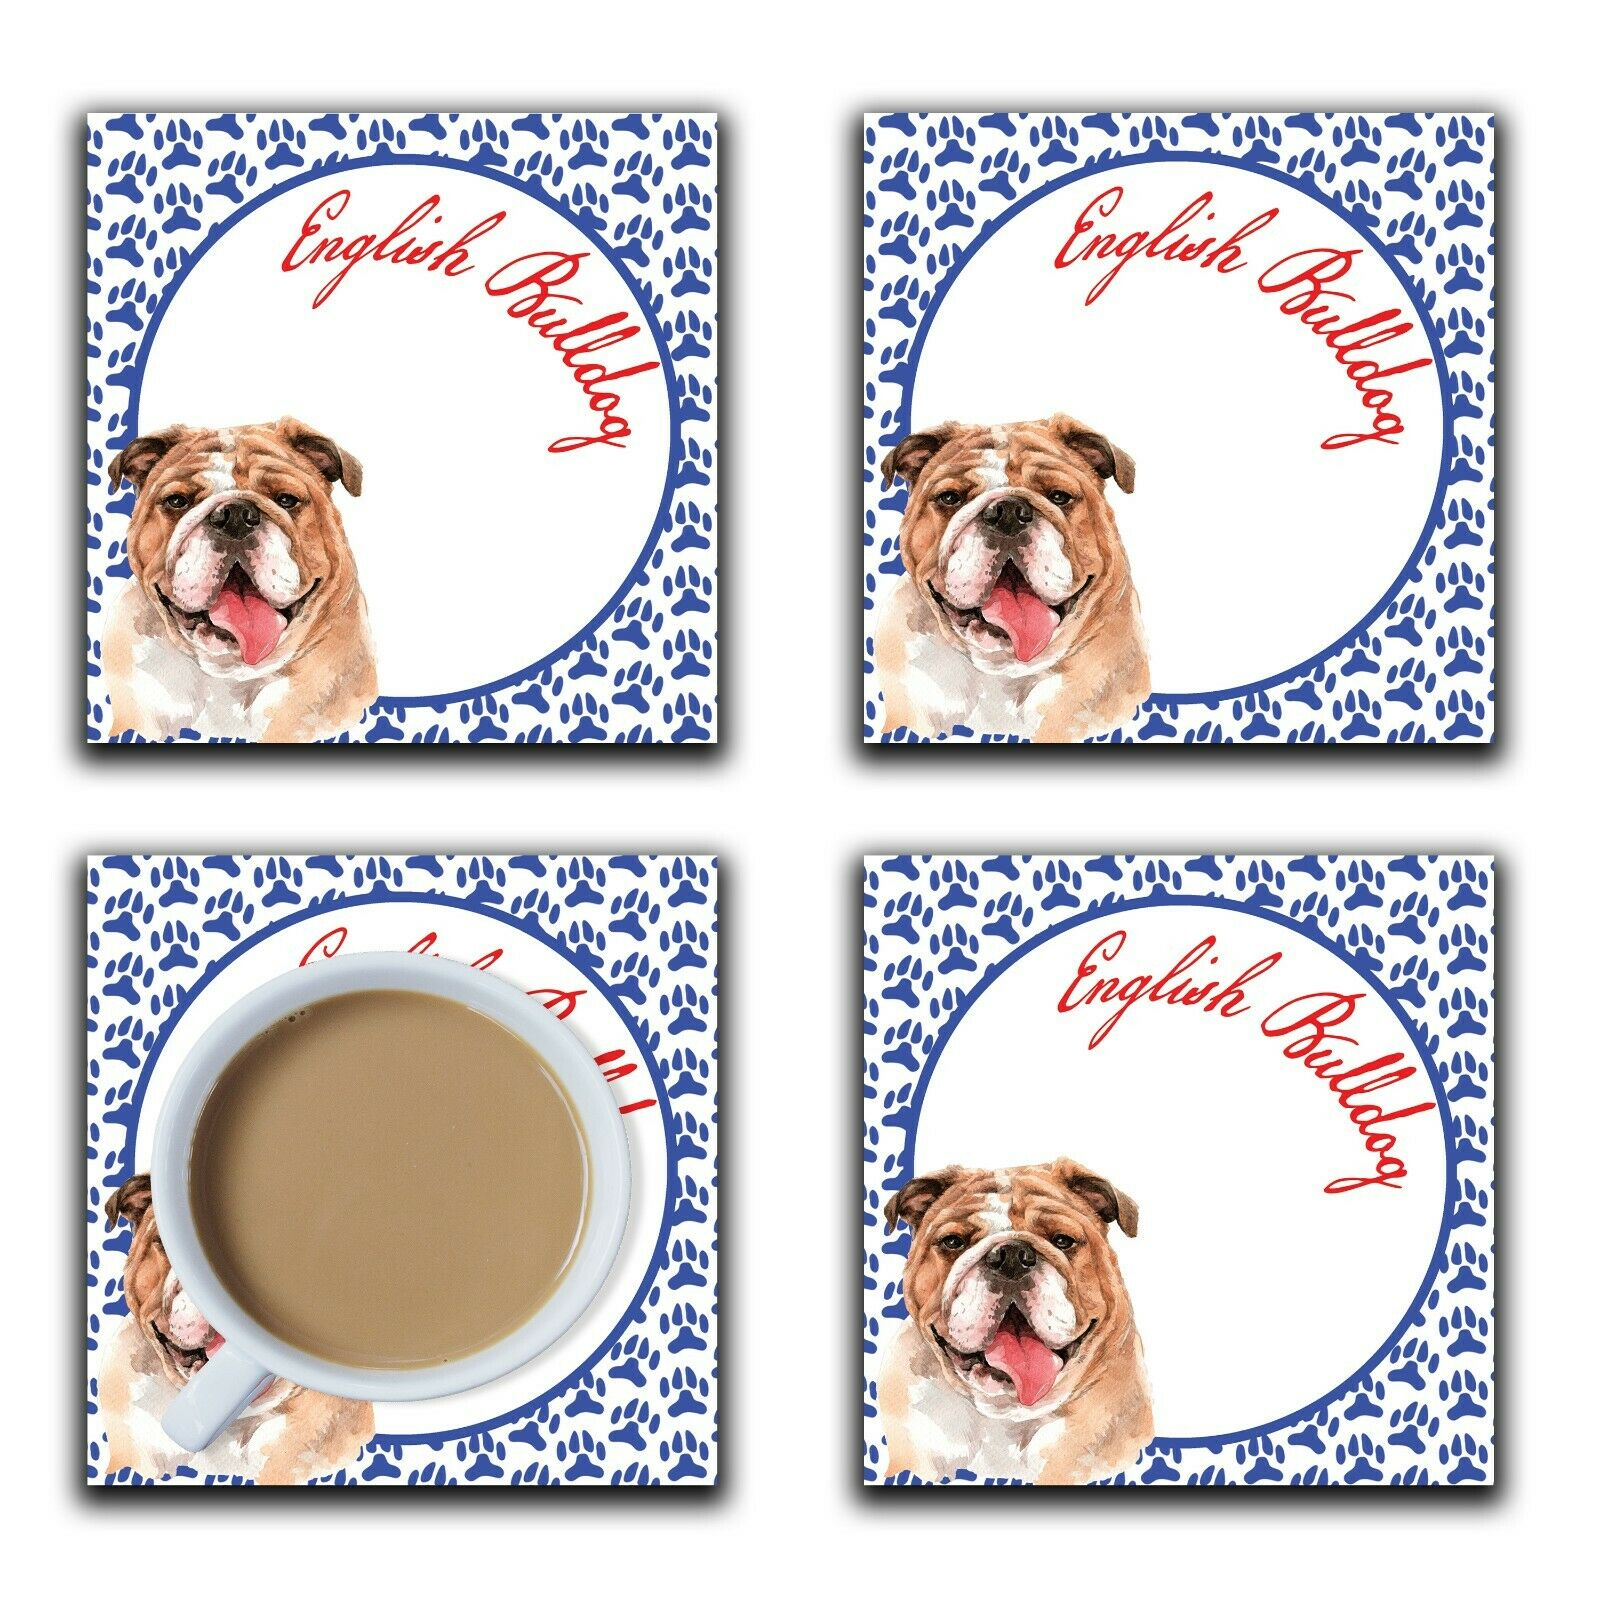 Embossi Printed English Bulldog, wood or ceramic tile, set of 4 Dog Coasters